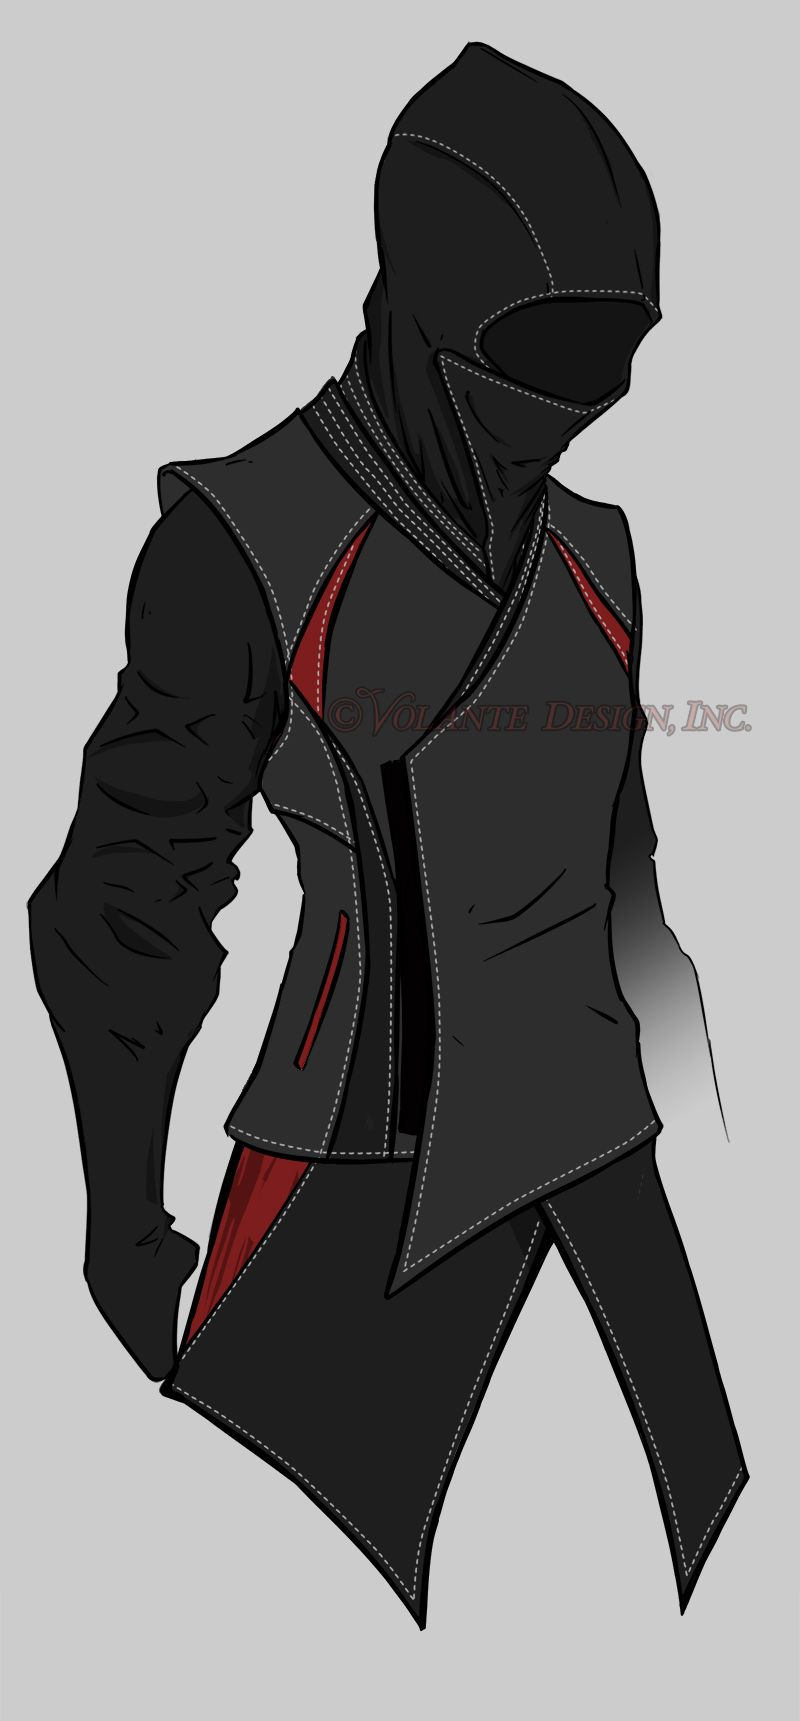 The Ninja hoodie concept from Volante Design. (Marc's modified jacket has some of the styling.)